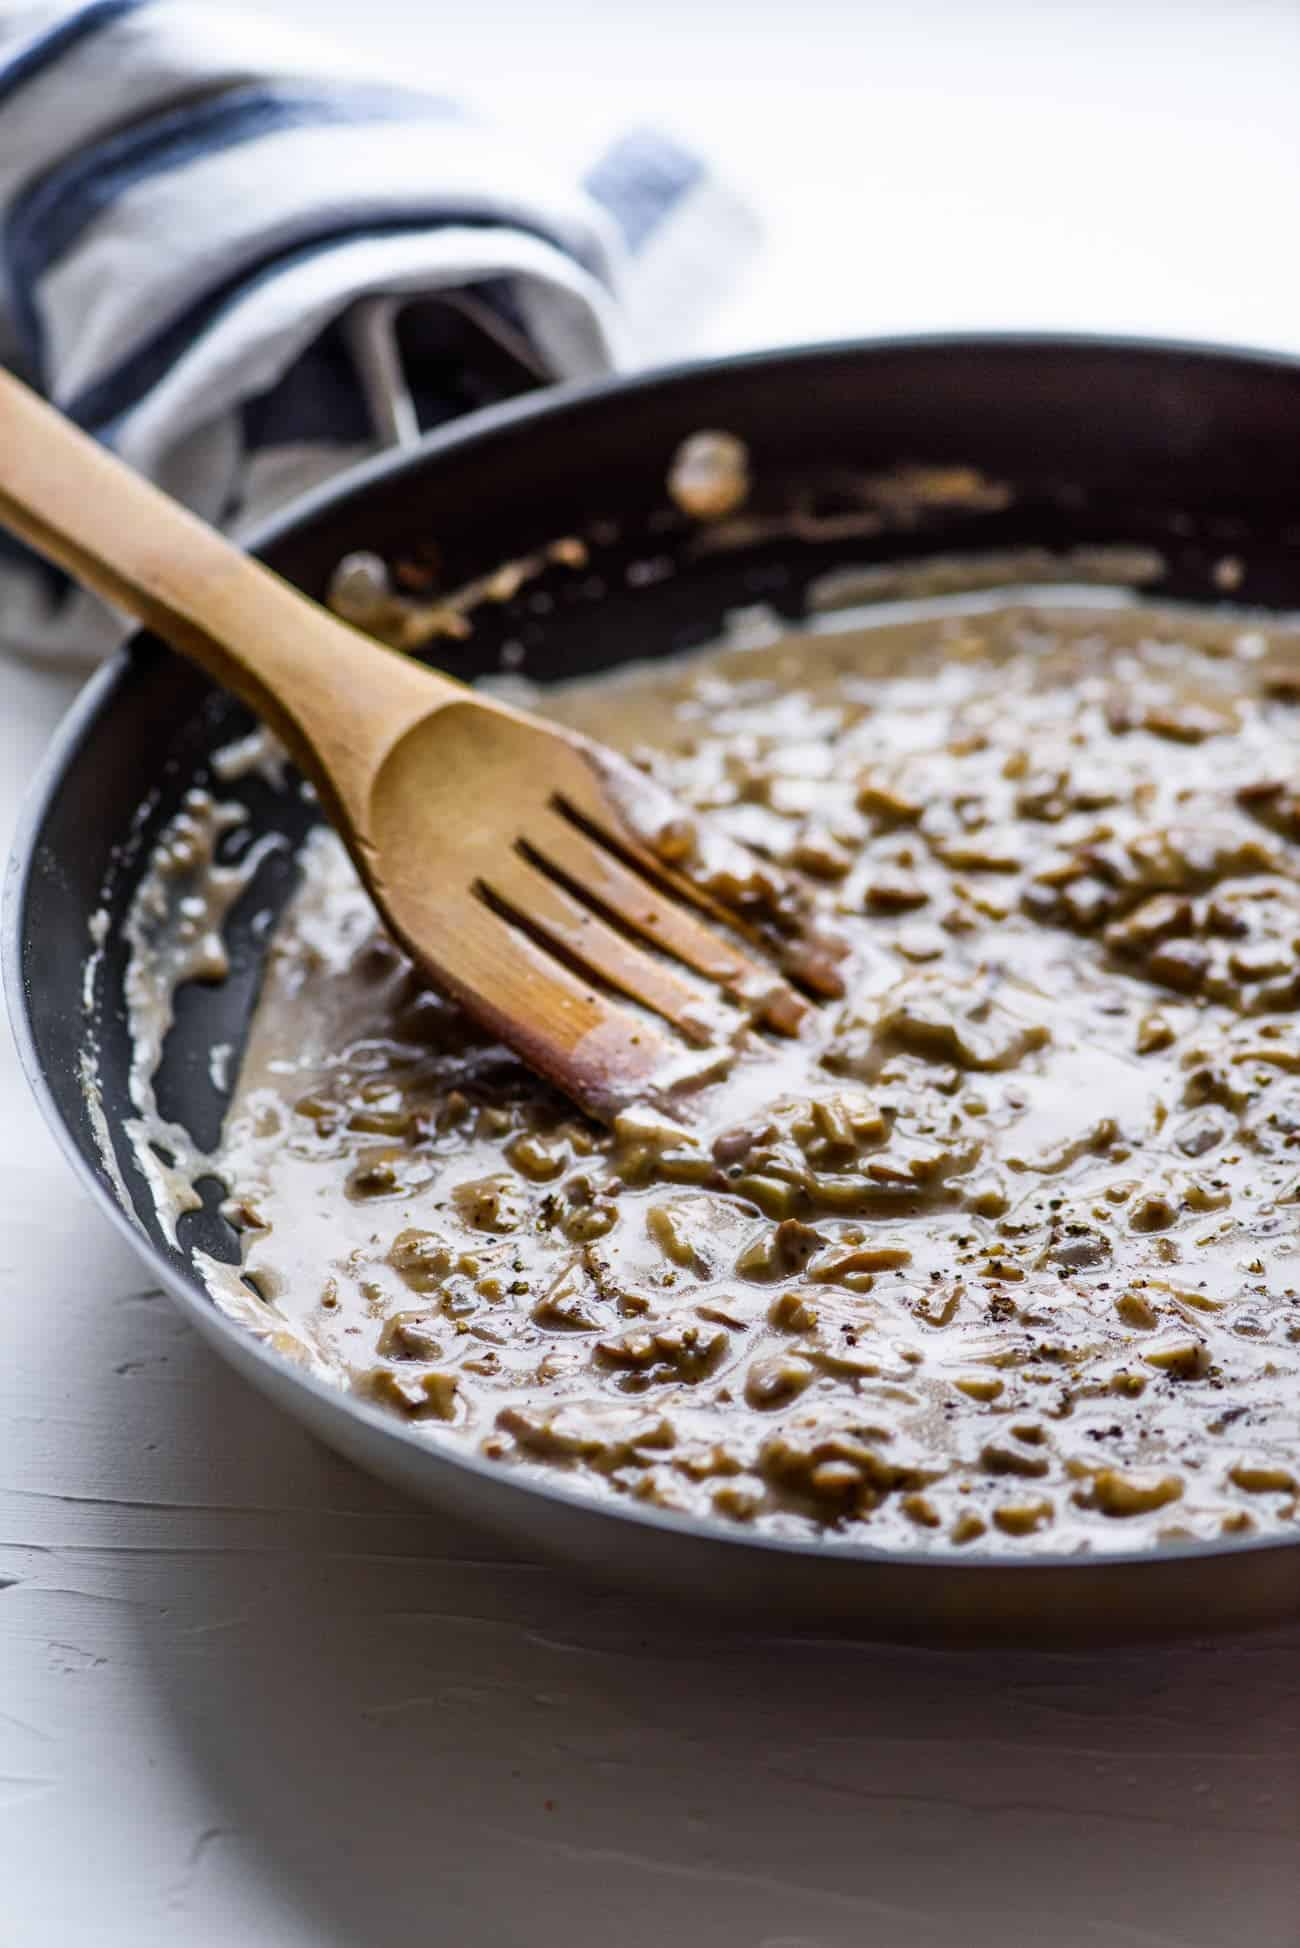 Creamy mushroom gravy in a skillet with a wooden spatula